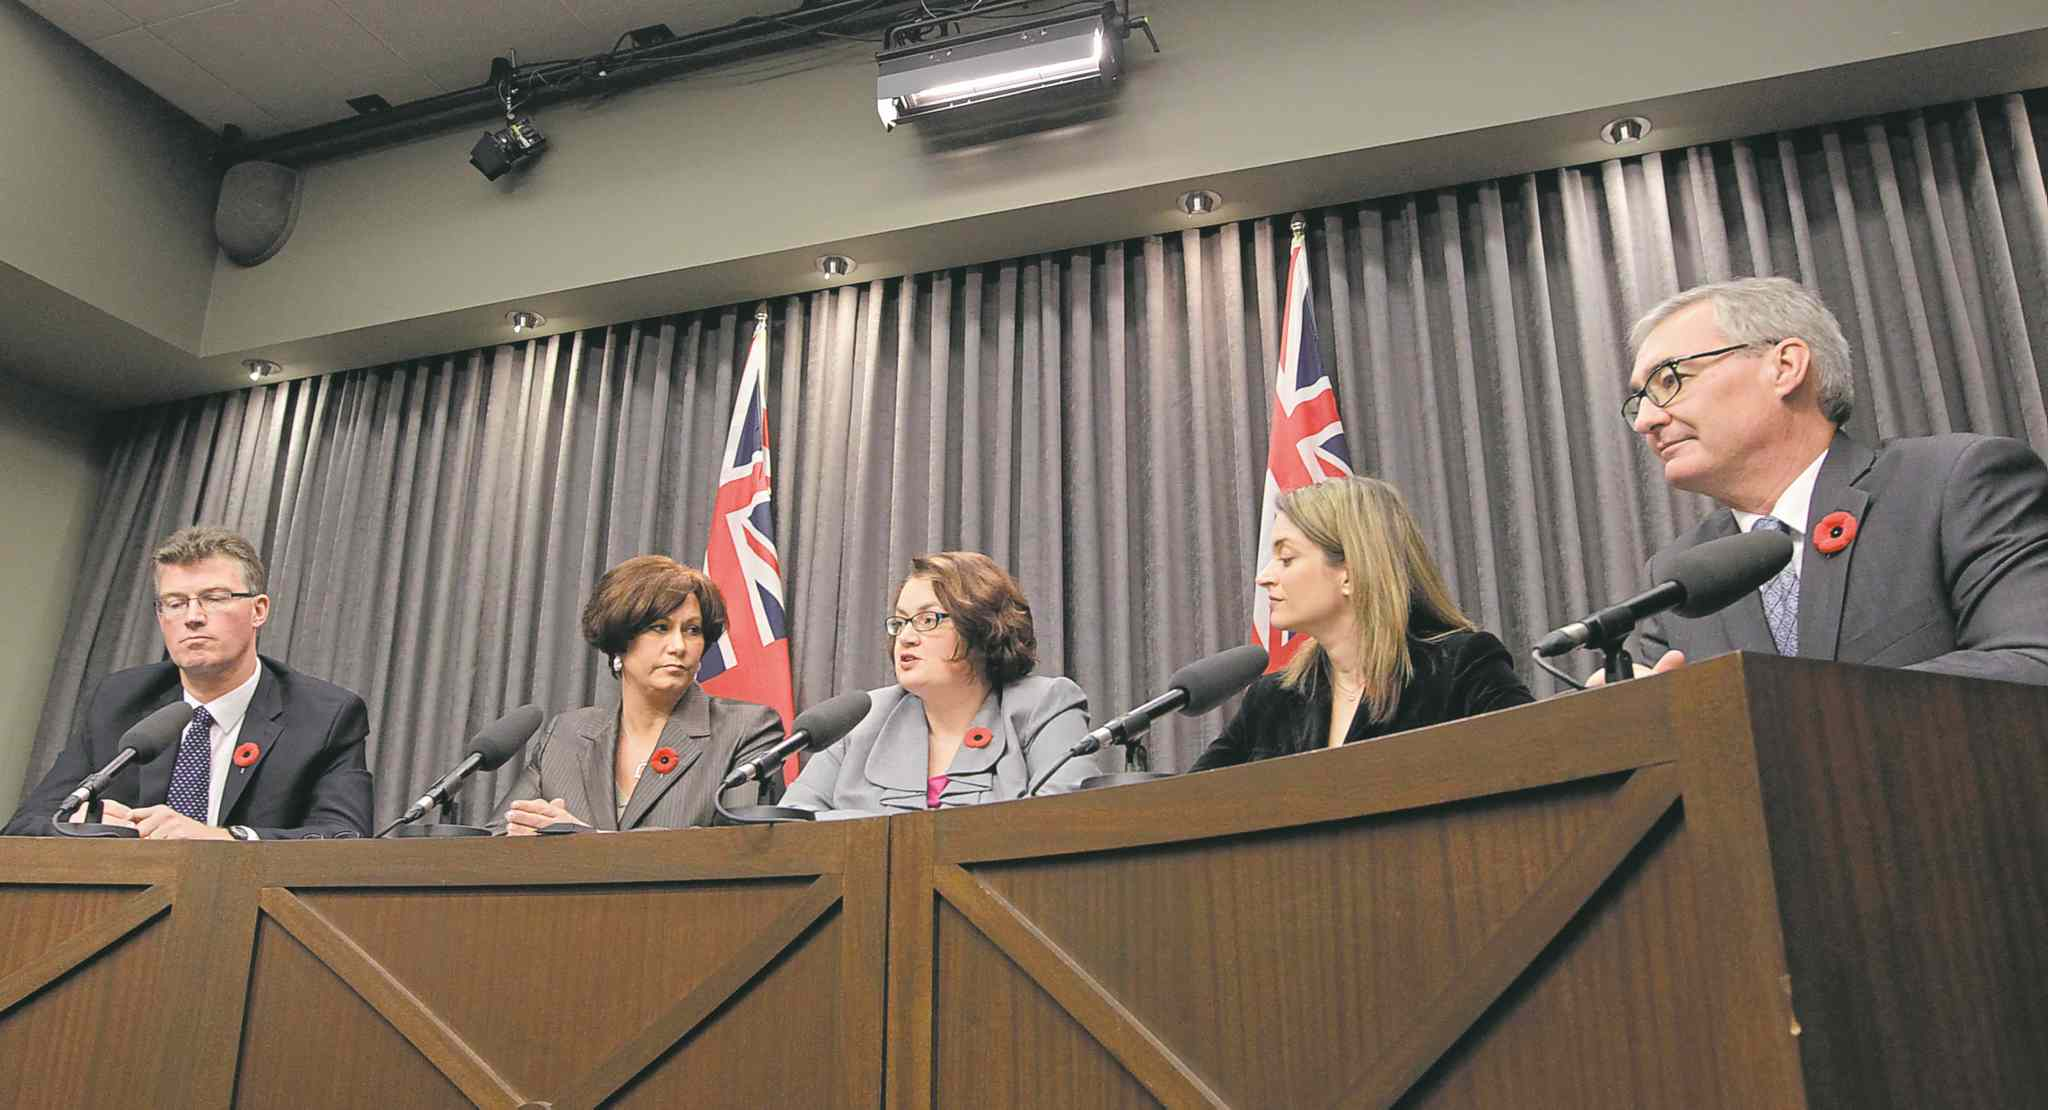 WAYNE GLOWACKI / WINNIPEG FREE PRESS filesDissident MLAs (from left) Andrew Swan, Theresa Oswald, Jennifer Howard, Erin Selby and Stan Struthers are still in the NDP doghouse.